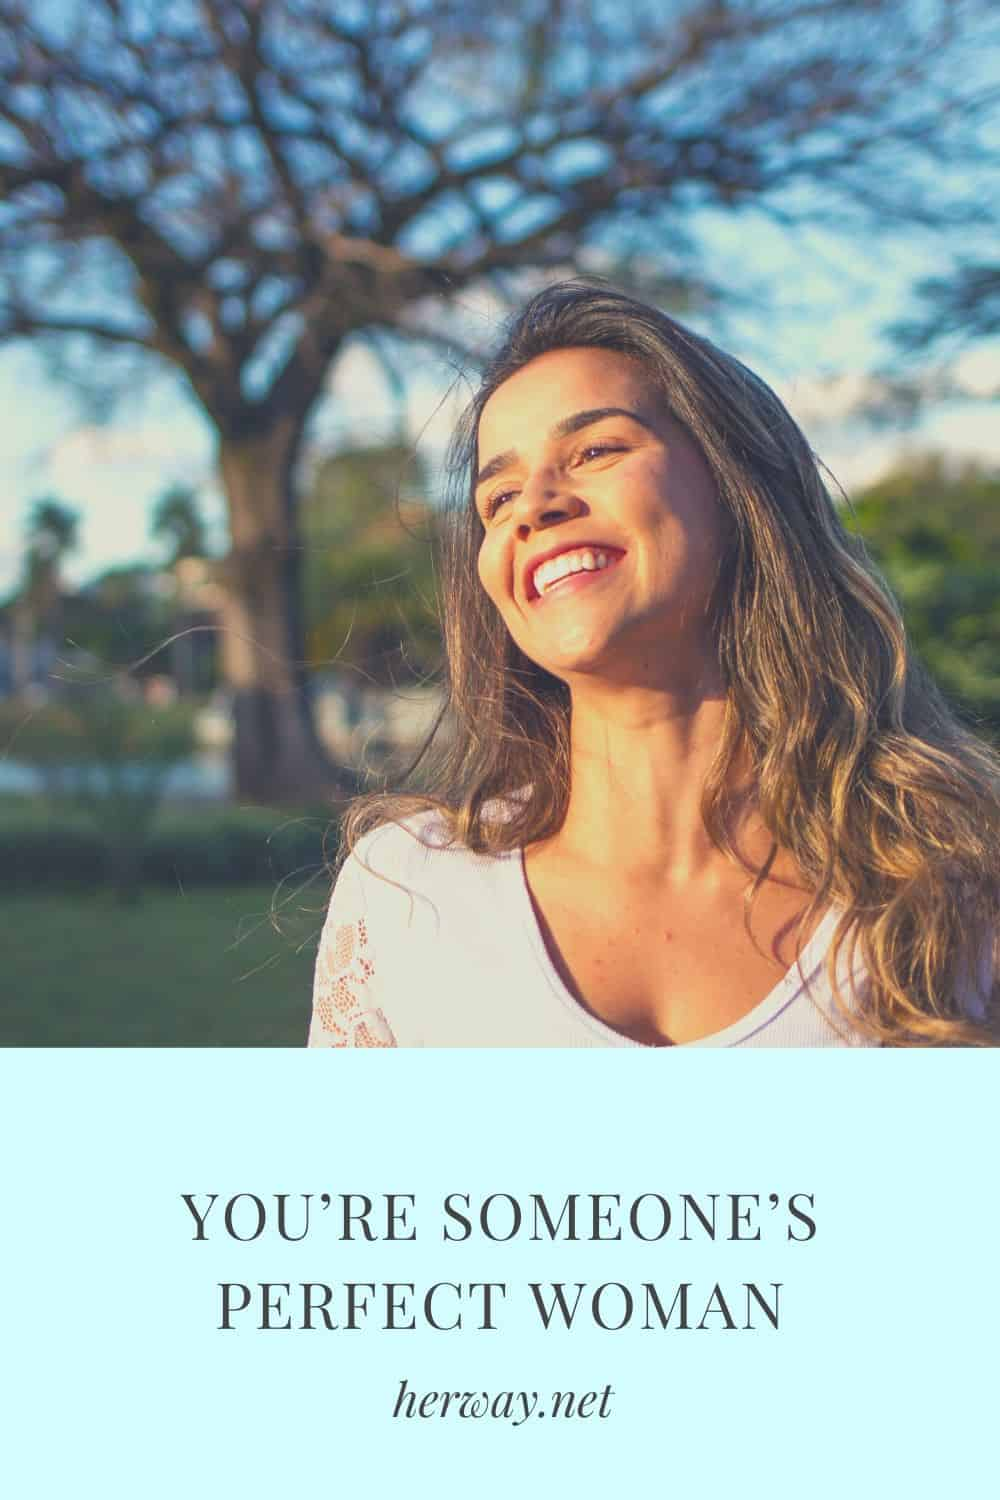 YOU'RE SOMEONE'S PERFECT WOMAN